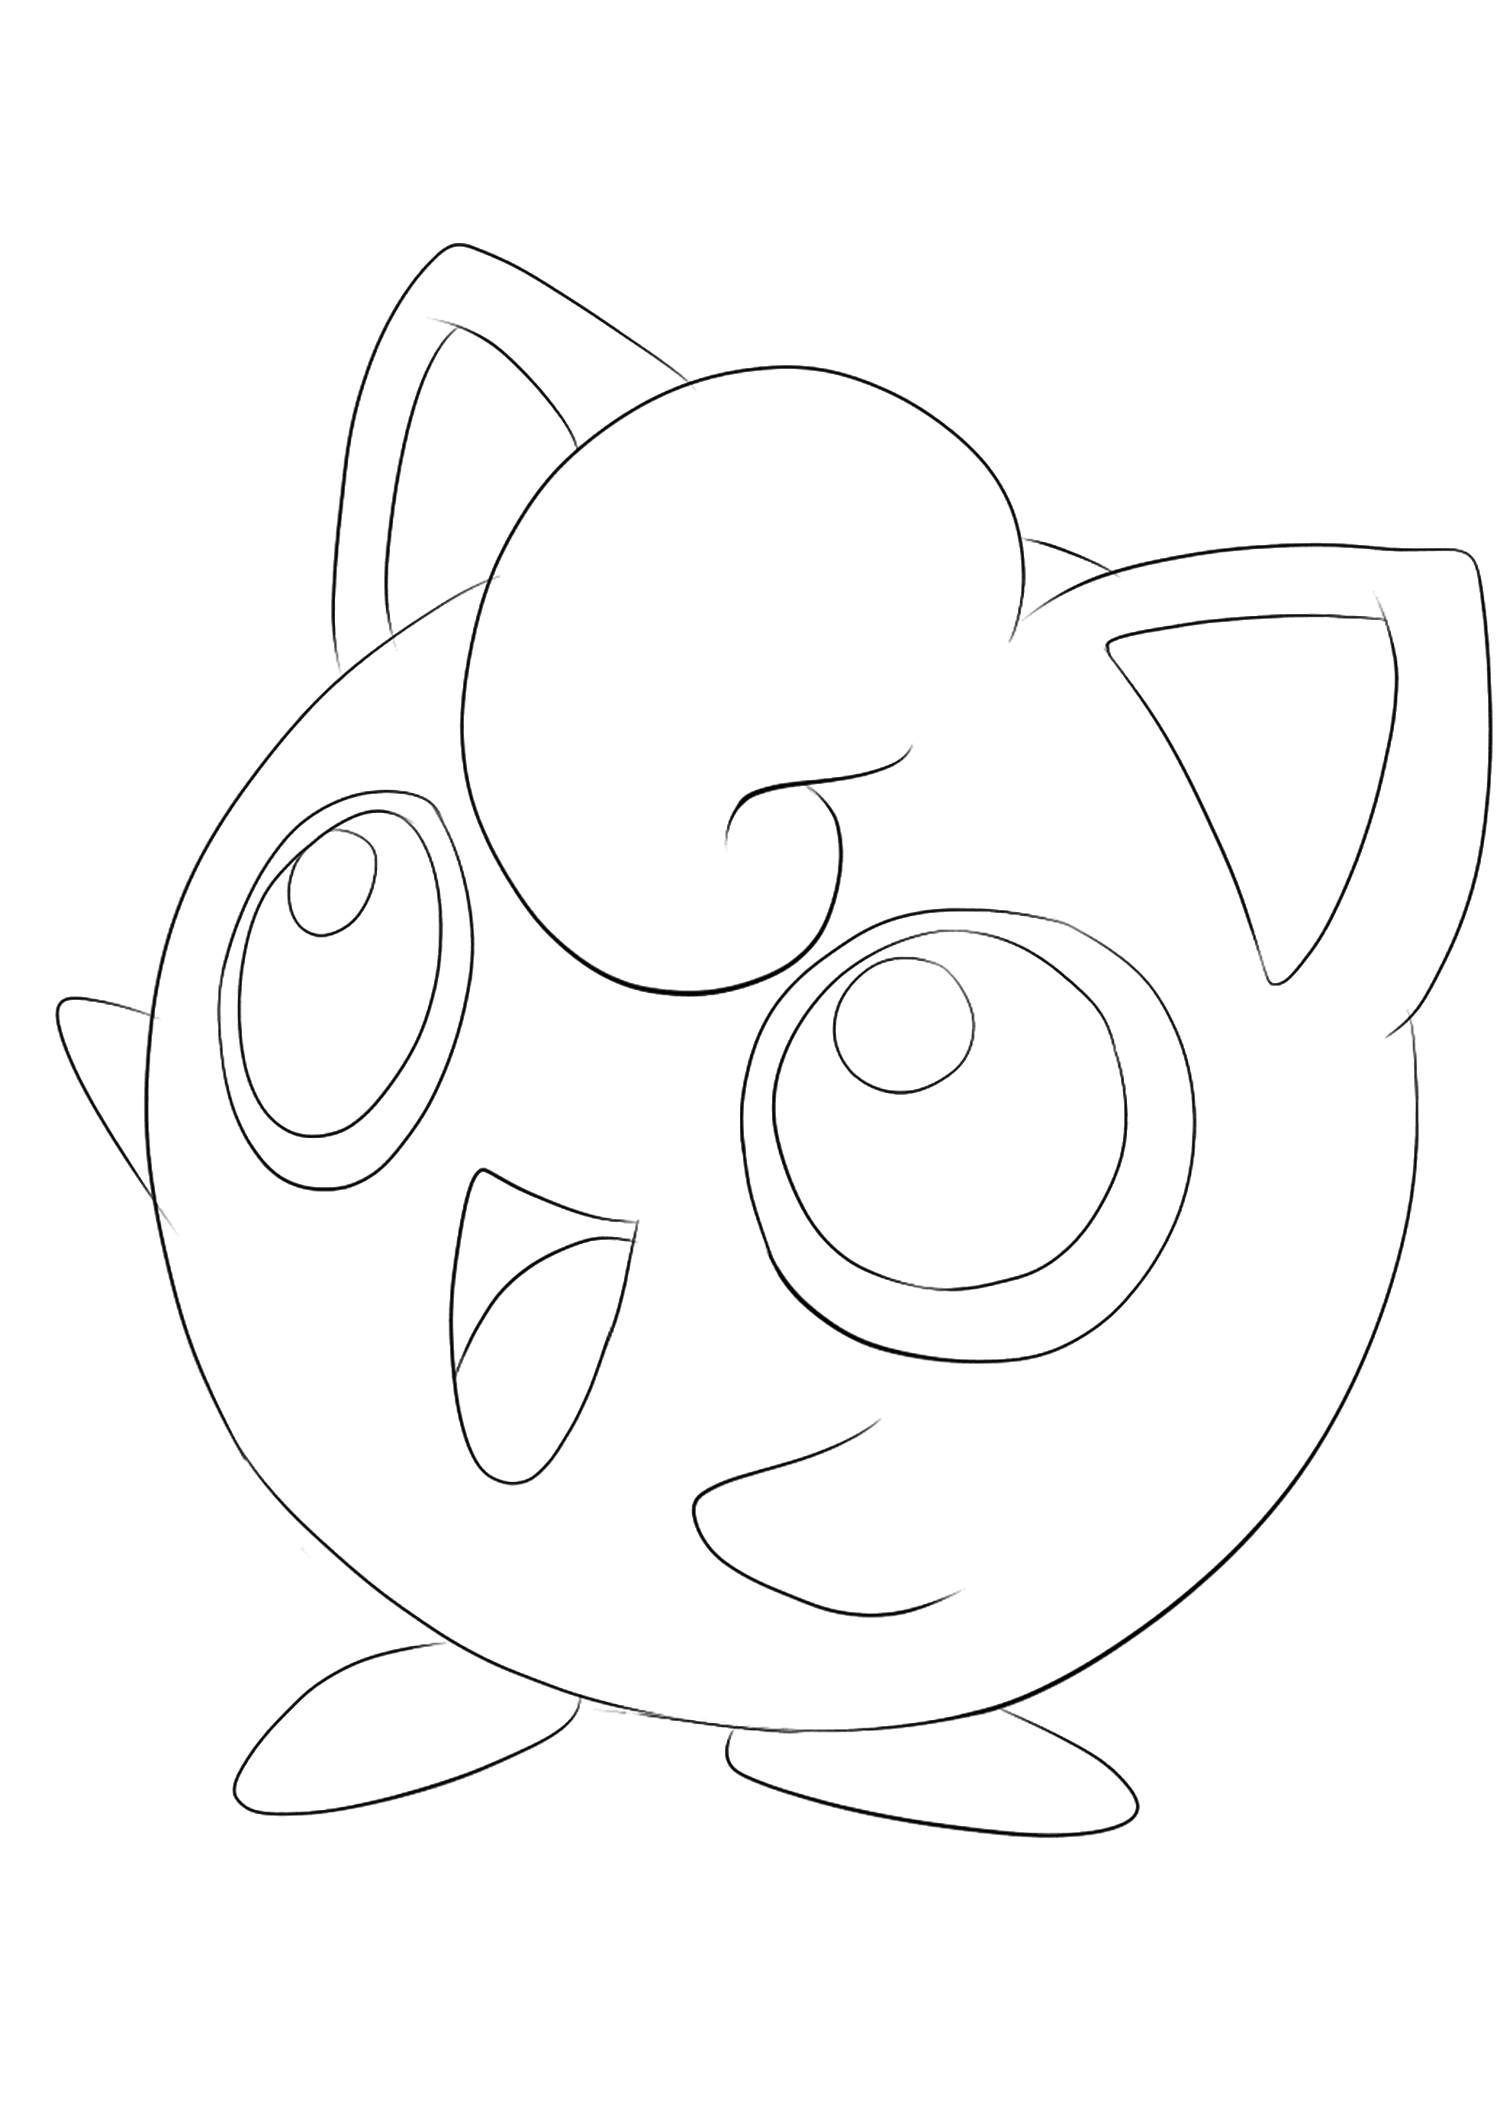 pokemon coloring pages jigglypuff jigglypuff coloring pages getcoloringpagescom jigglypuff coloring pokemon pages